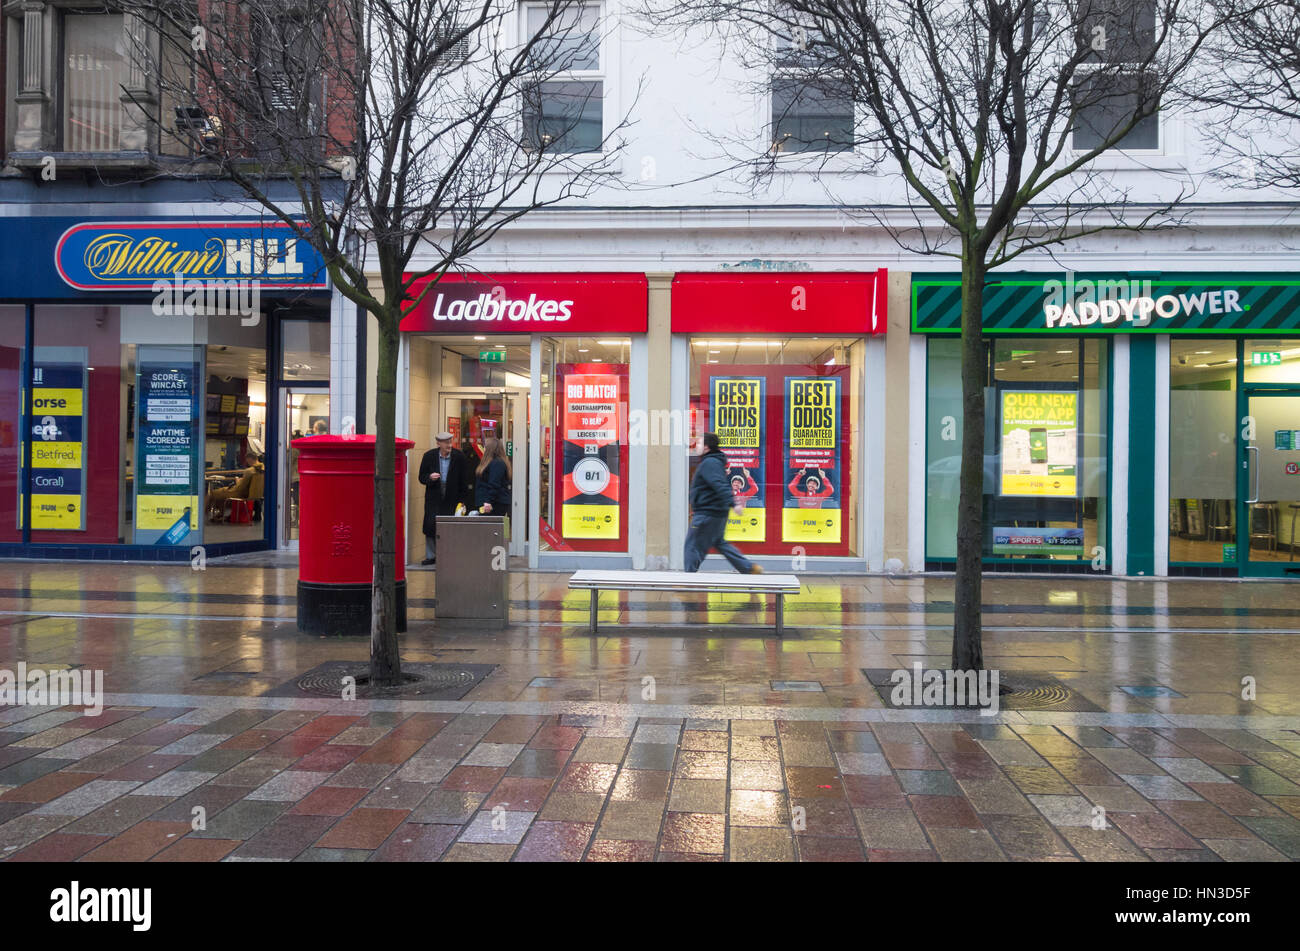 William hil ladbrokes and paddy power betting shops in middlesbrough town centre england